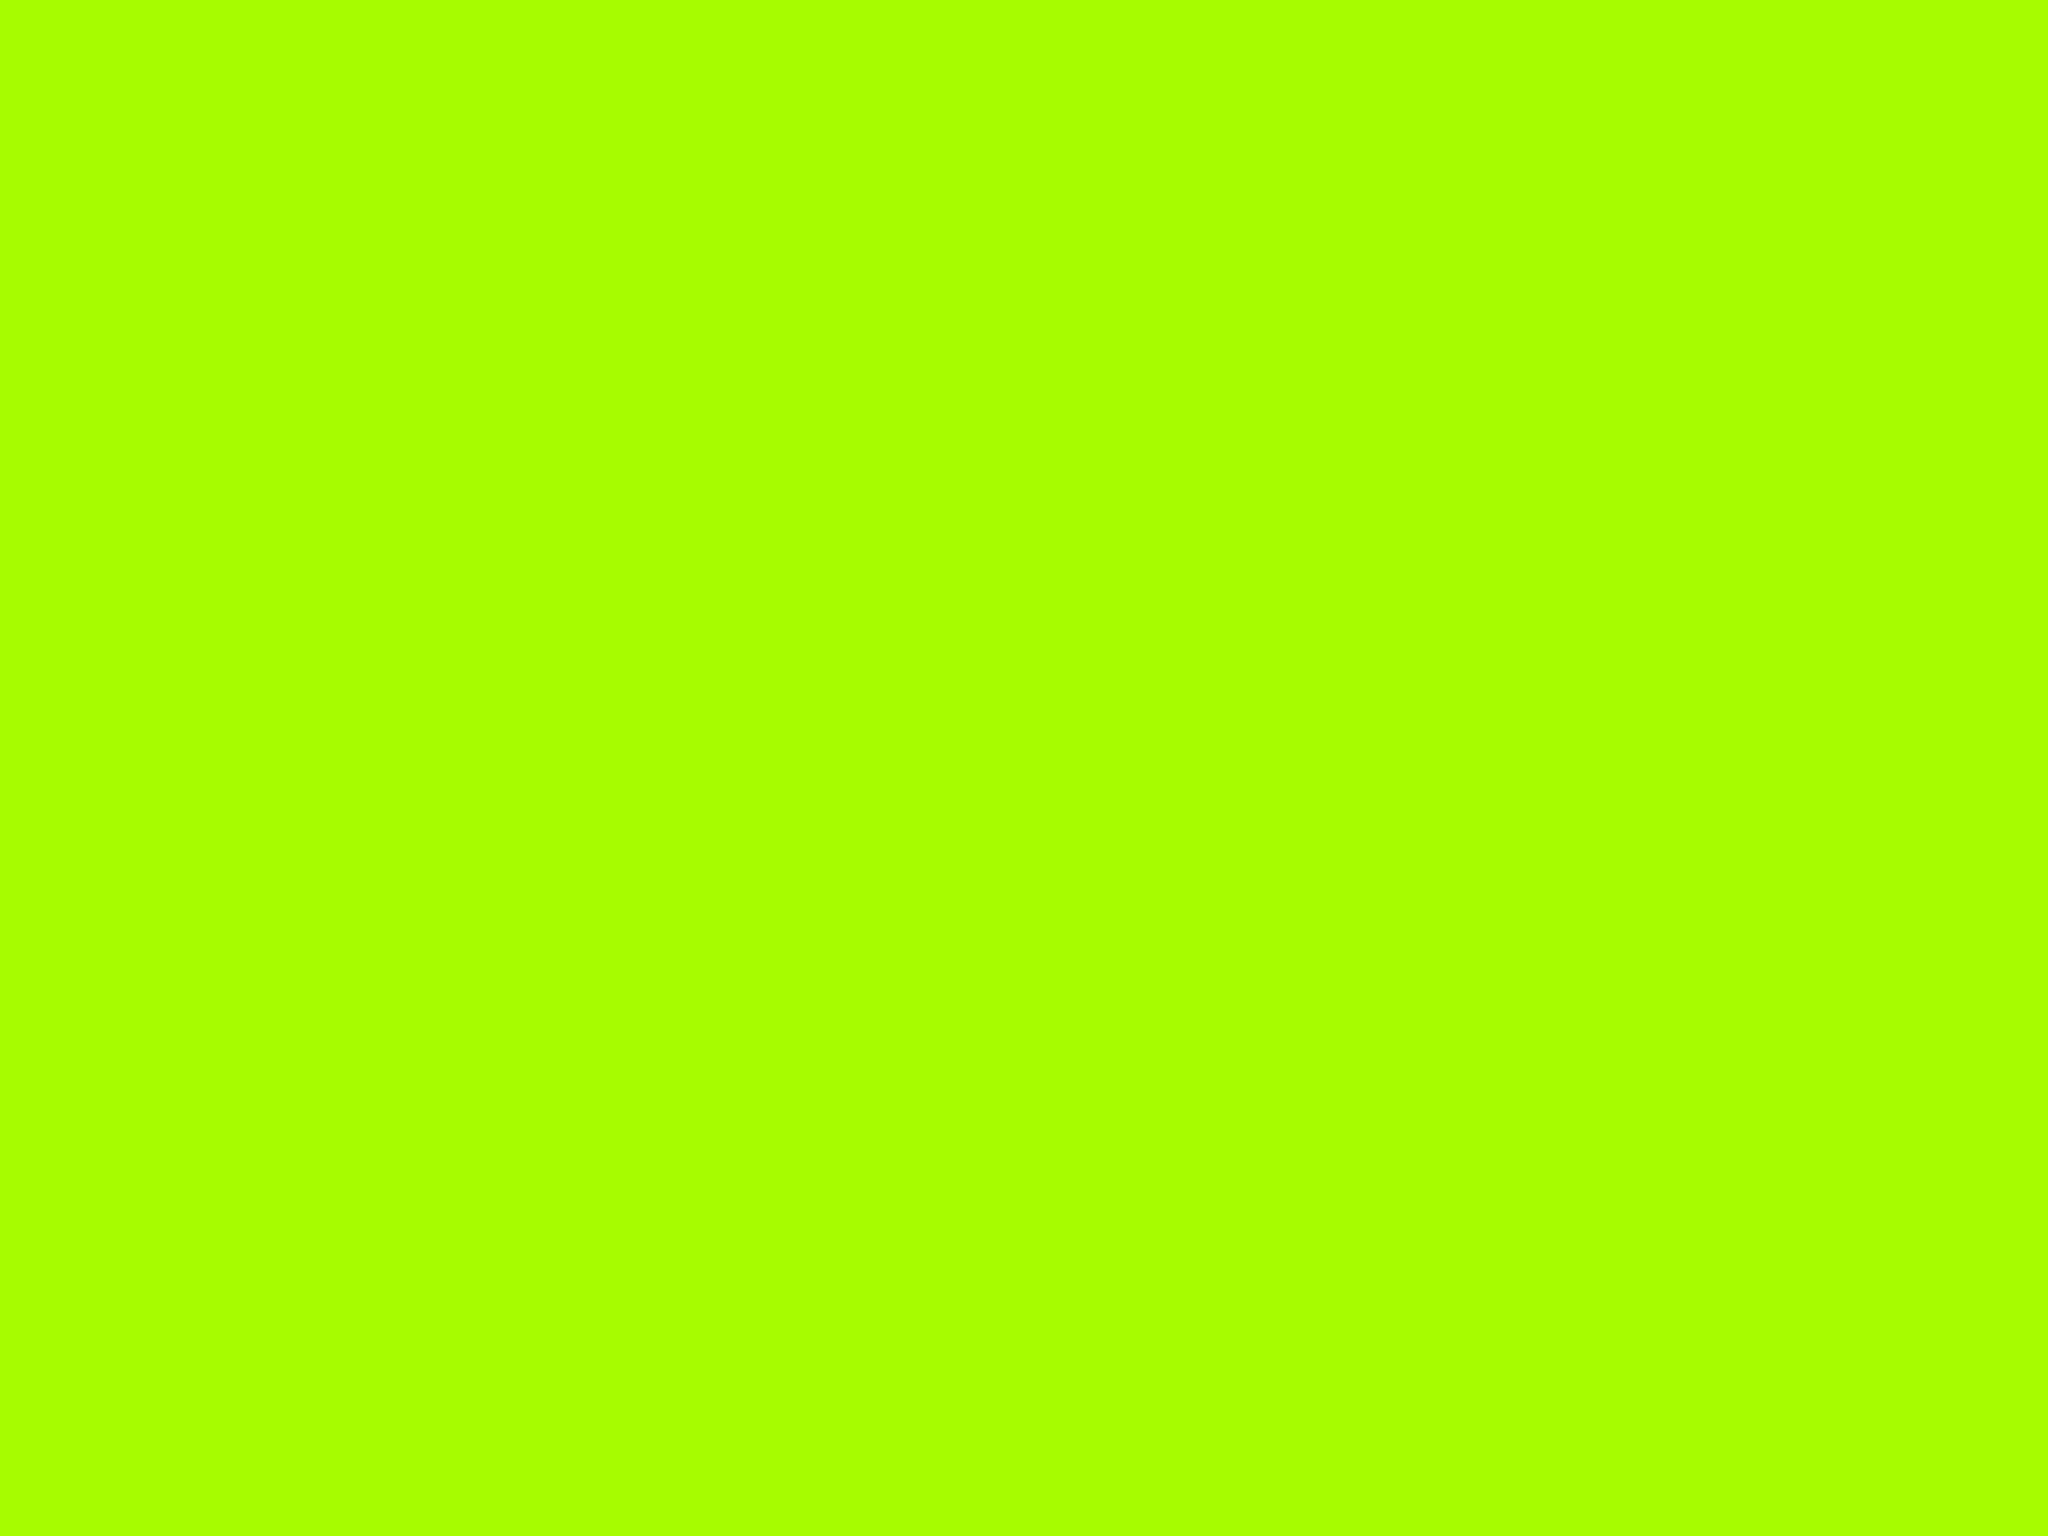 2048x1536 Spring Bud Solid Color Background